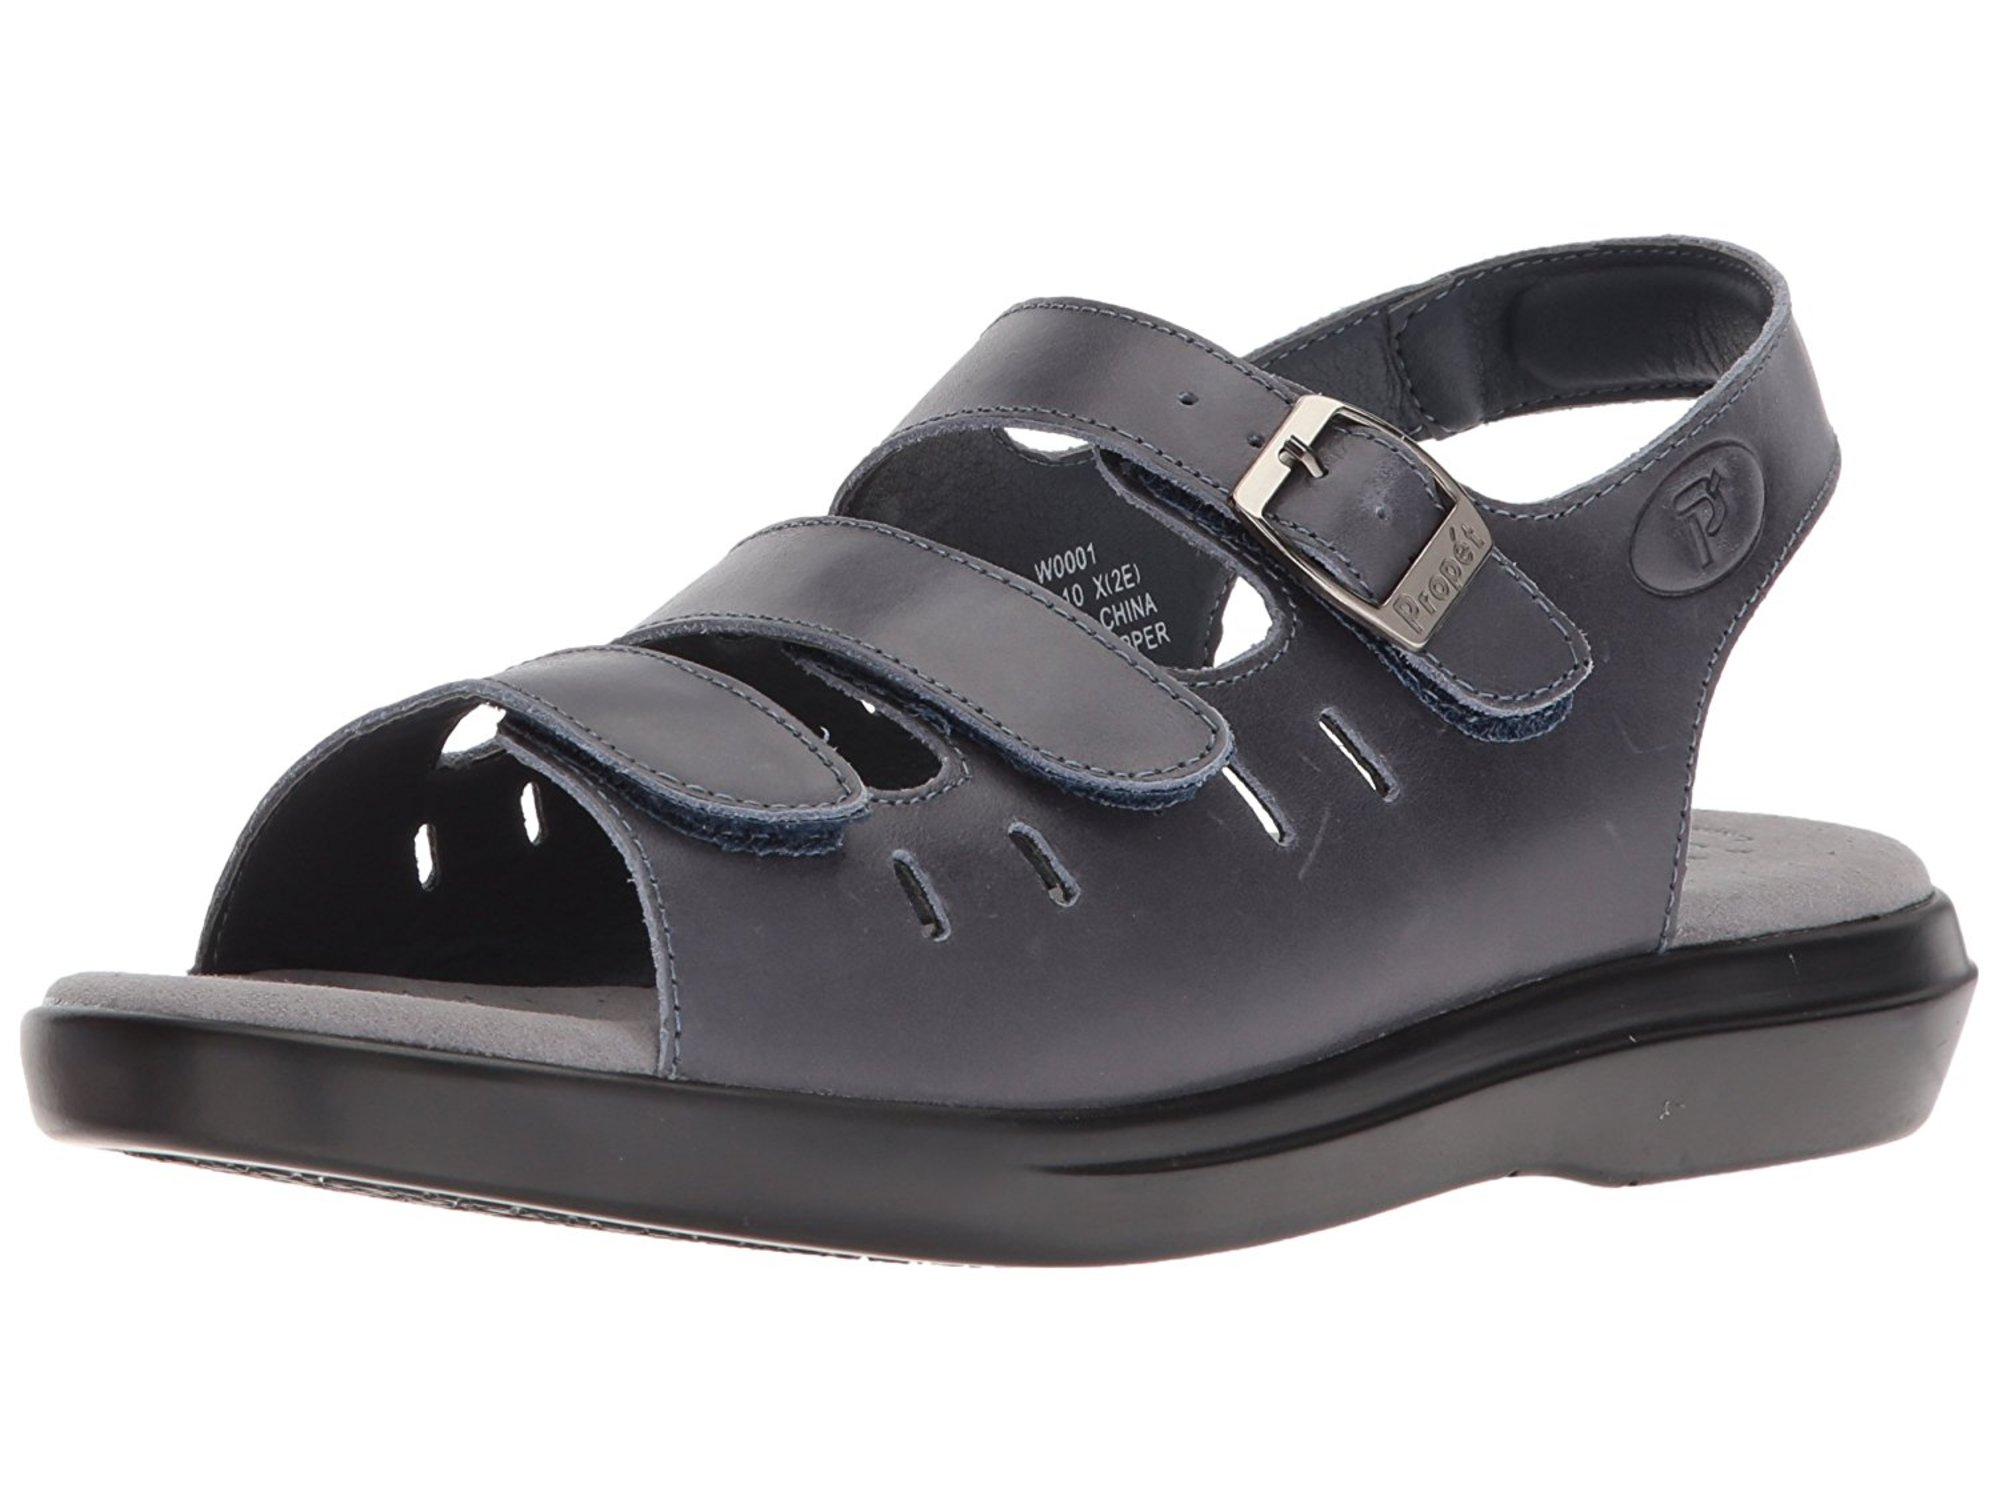 71d5cd518b1dae Propét Womens Breeze Walker Leather Open Toe Casual Slingback